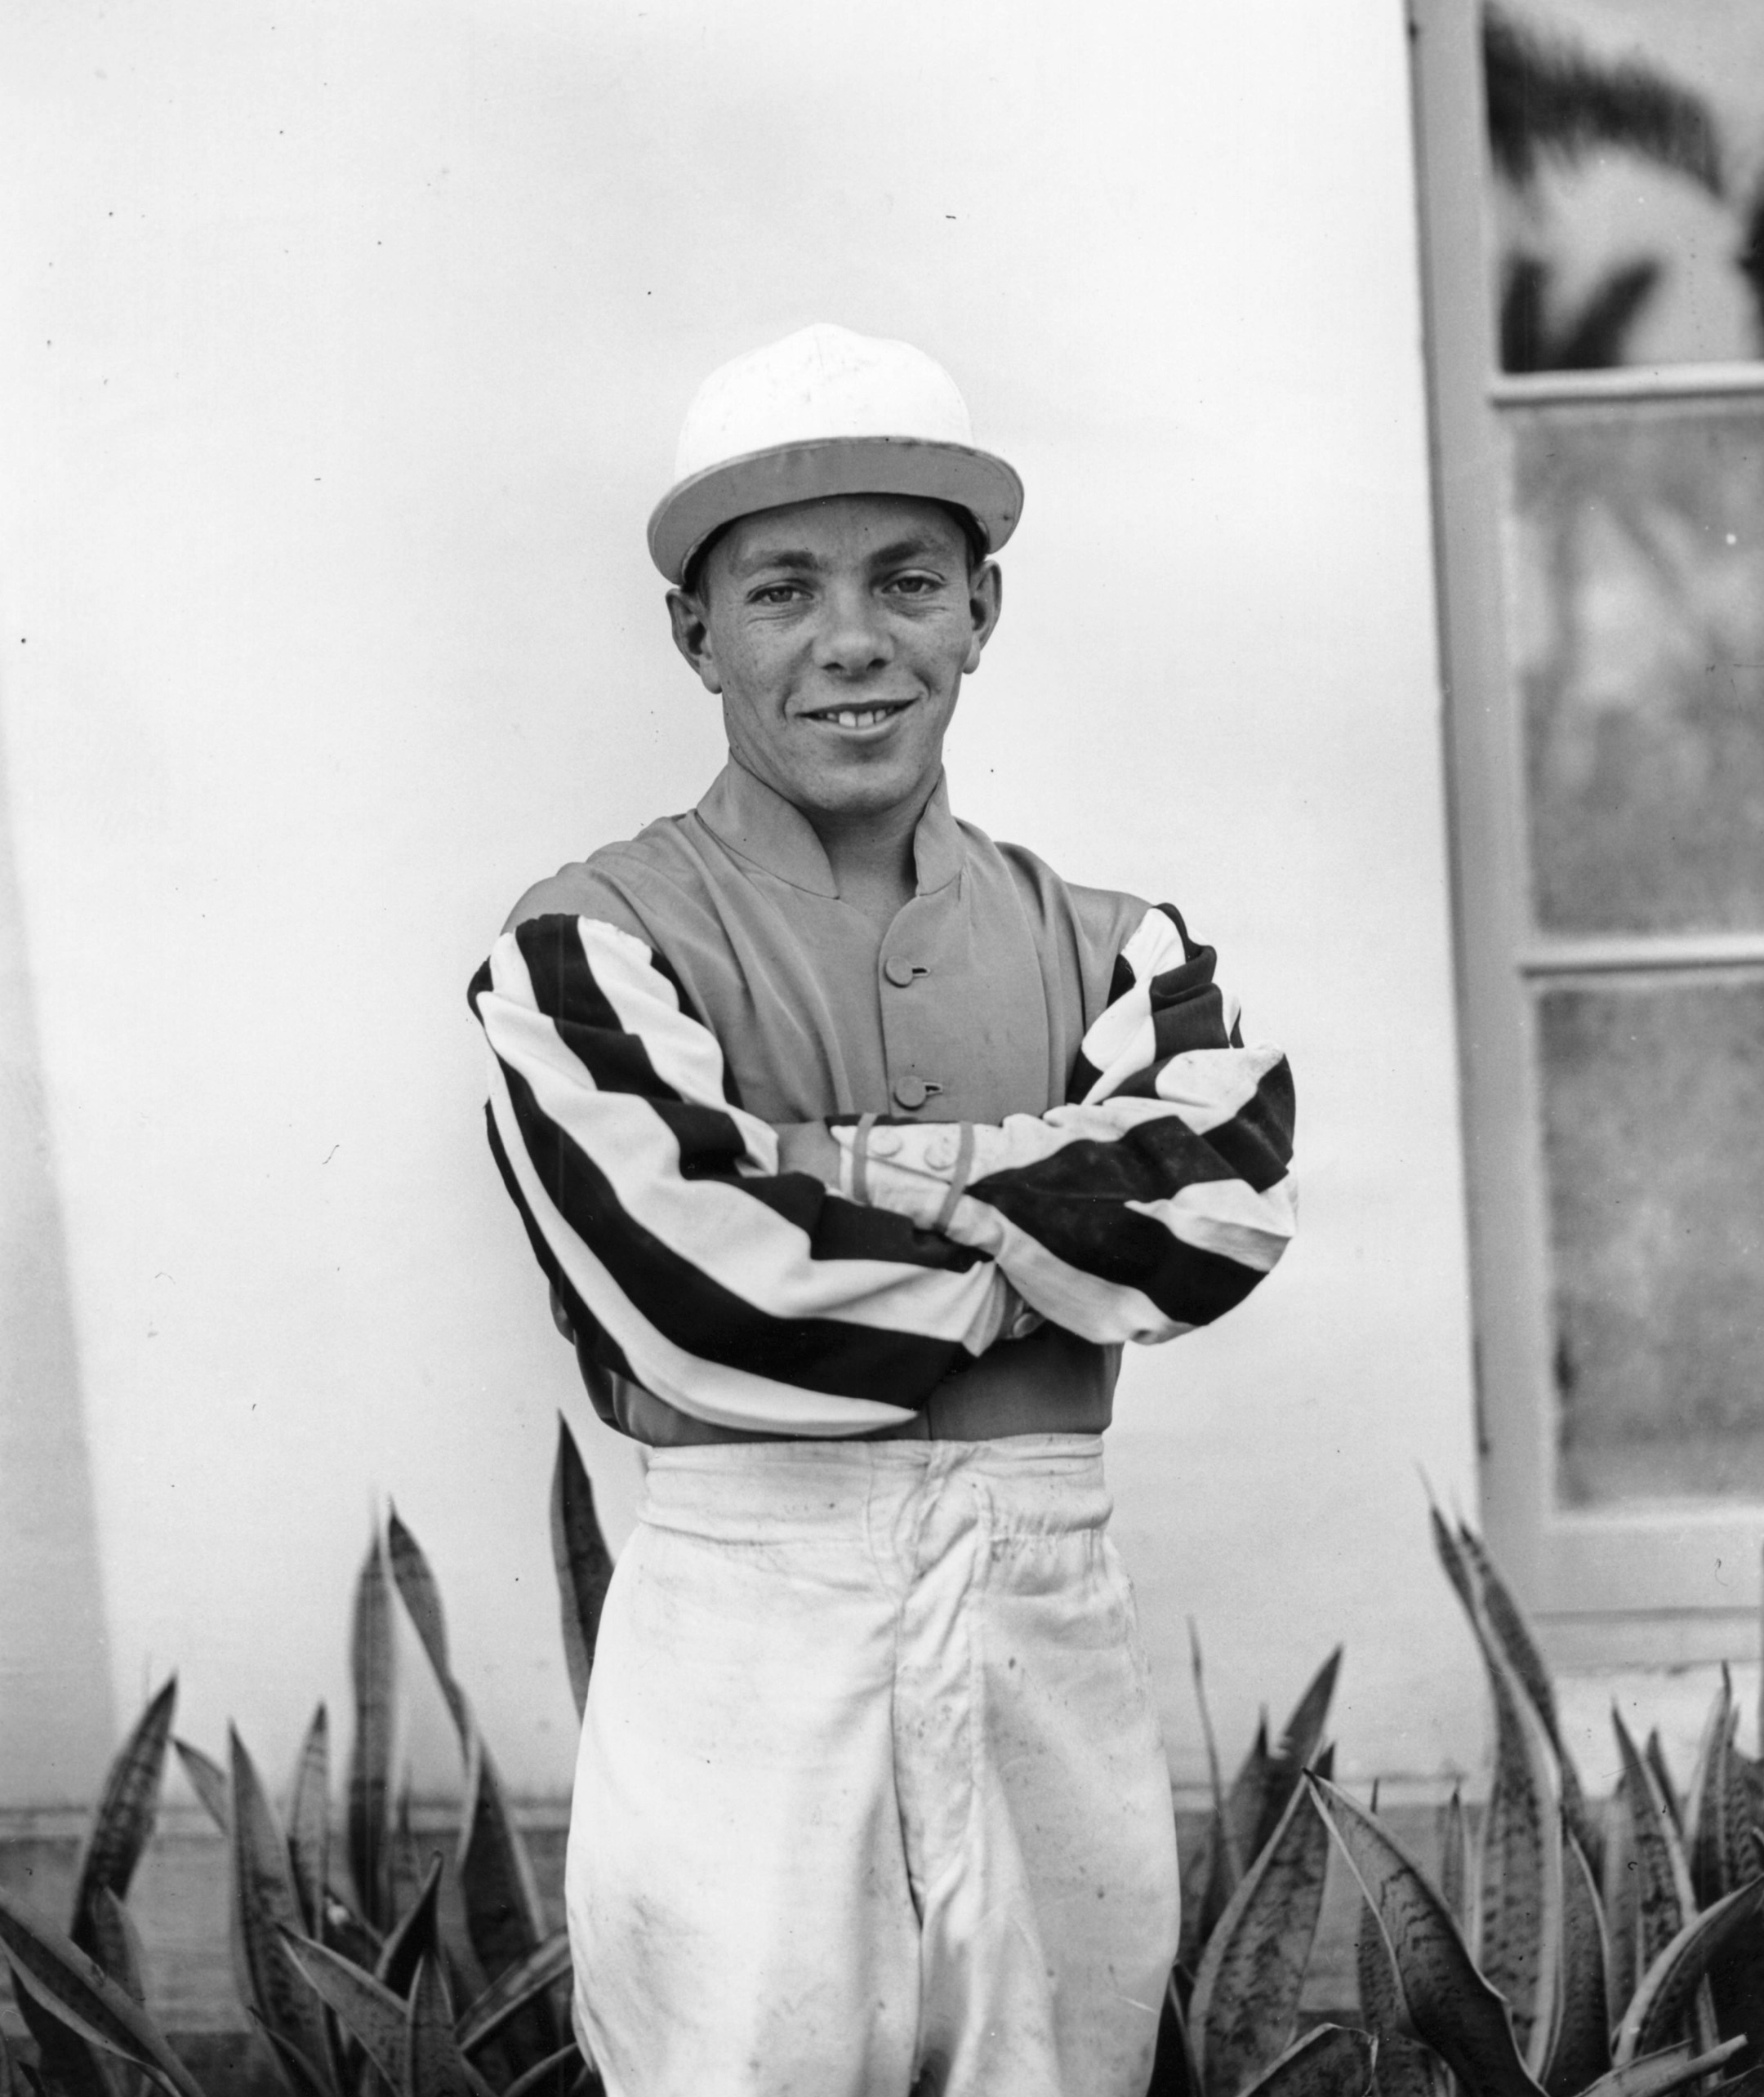 Conn McCreary at Hialeah Park, February 1941 (Keeneland Library Morgan Collection/Museum Collection)